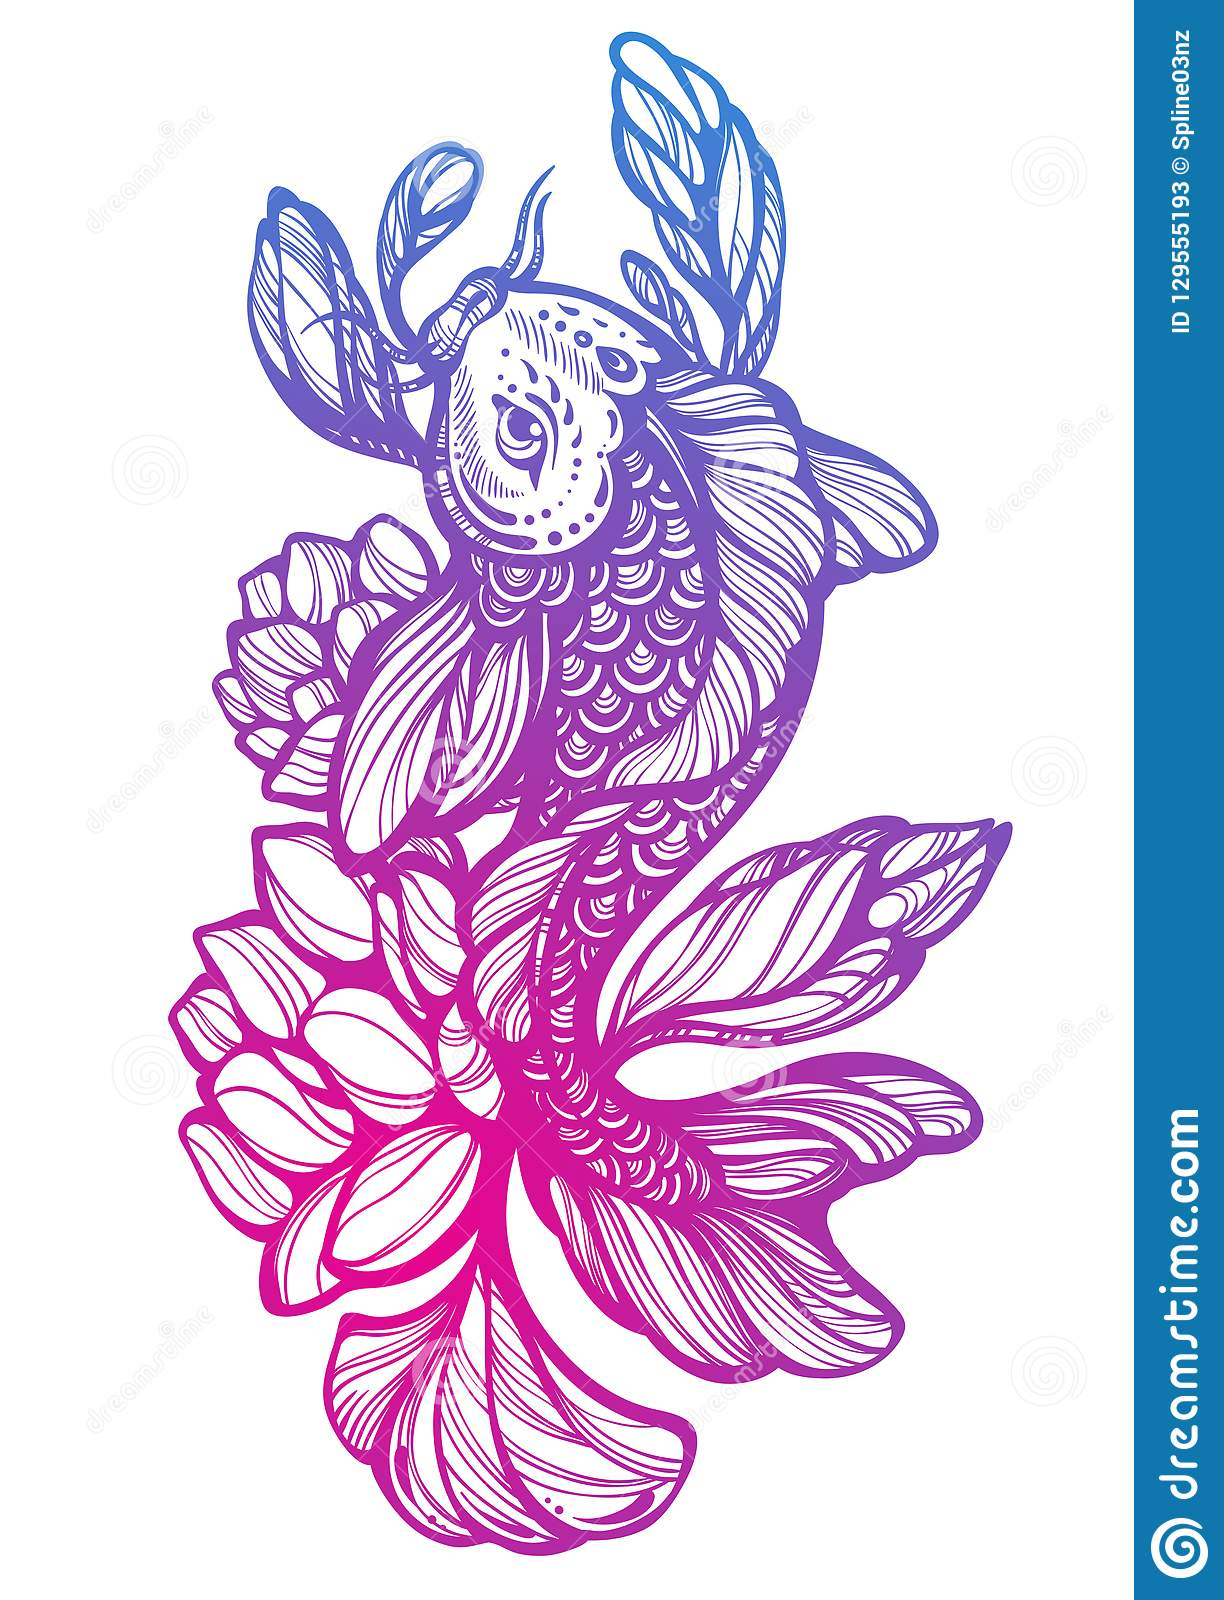 88023d722b7b3 High-detailed beautiful illustration of Koi carp fish with Lotus around.  Oriental decorative symbol. Hand-drawn vector artwork.